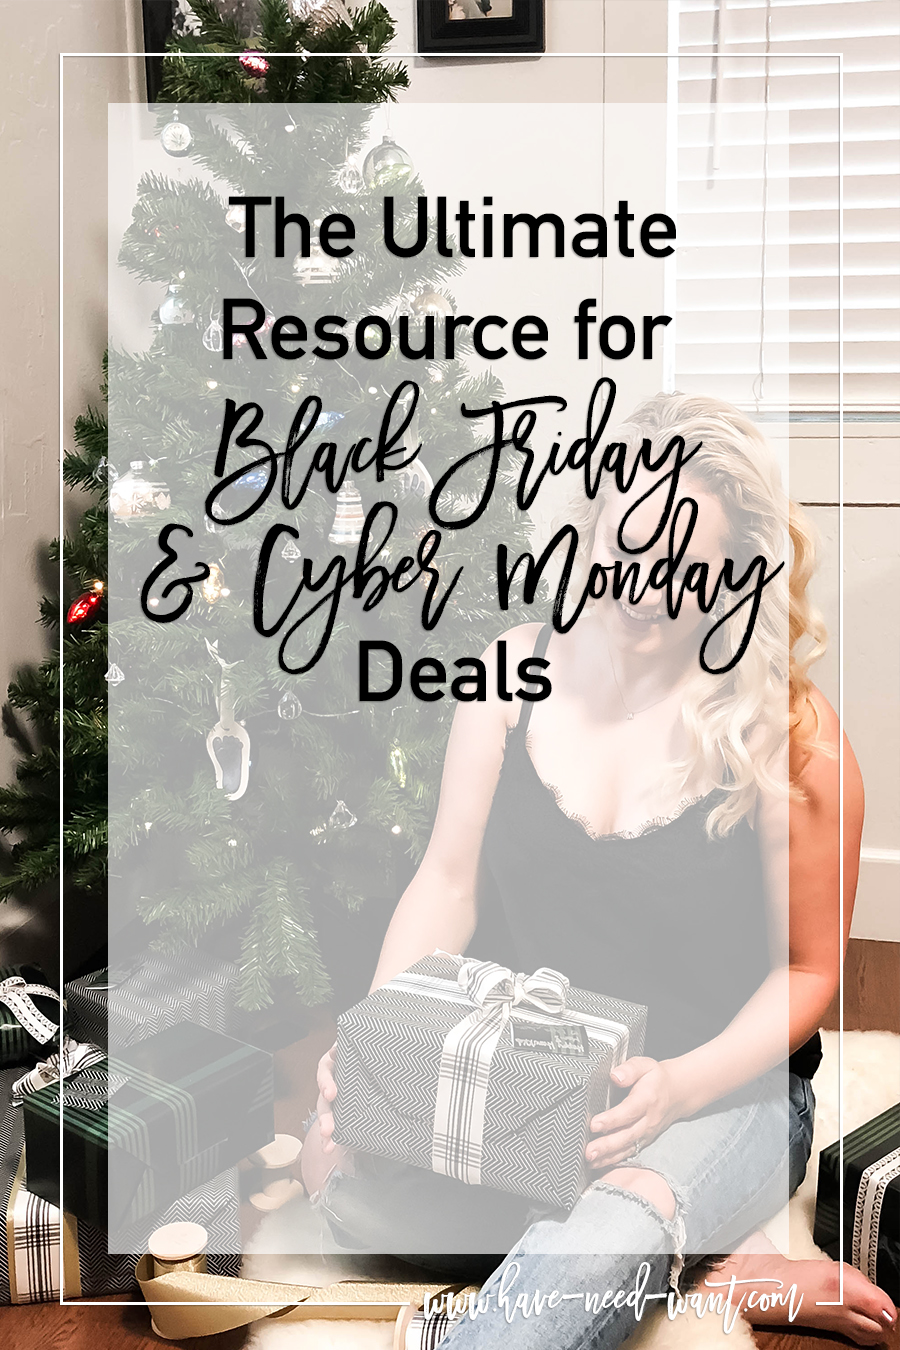 The Ultimate Resource for Black Friday and Cyber Monday Deals - One Stop Resource for all Your Holiday Shopping Needs This Black Friday + Cyber Monday - Have Need Want #Blackfriday #Cybermonday #HolidayShopping #HolidaySales